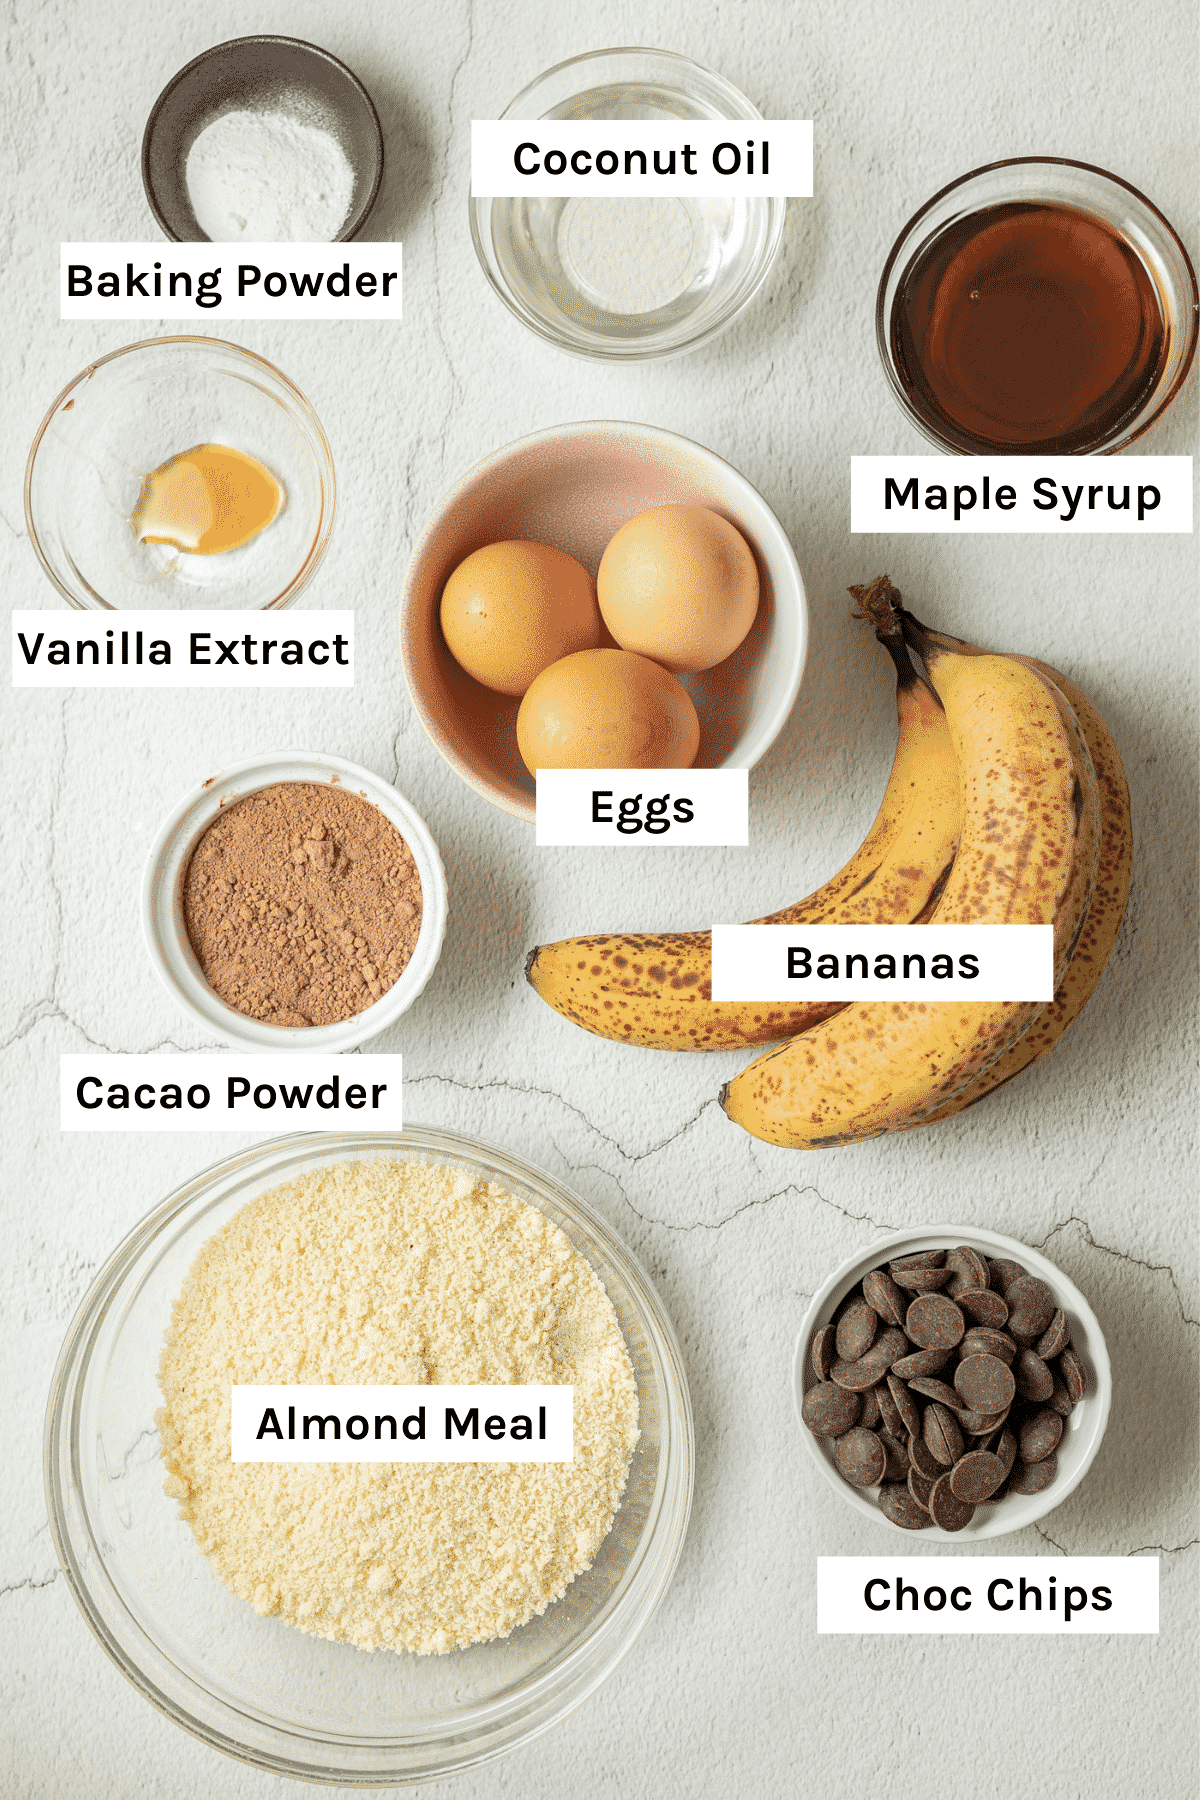 photo of the ingredients needed to make One Bowl Gluten Free Double Chocolate Banana Muffins